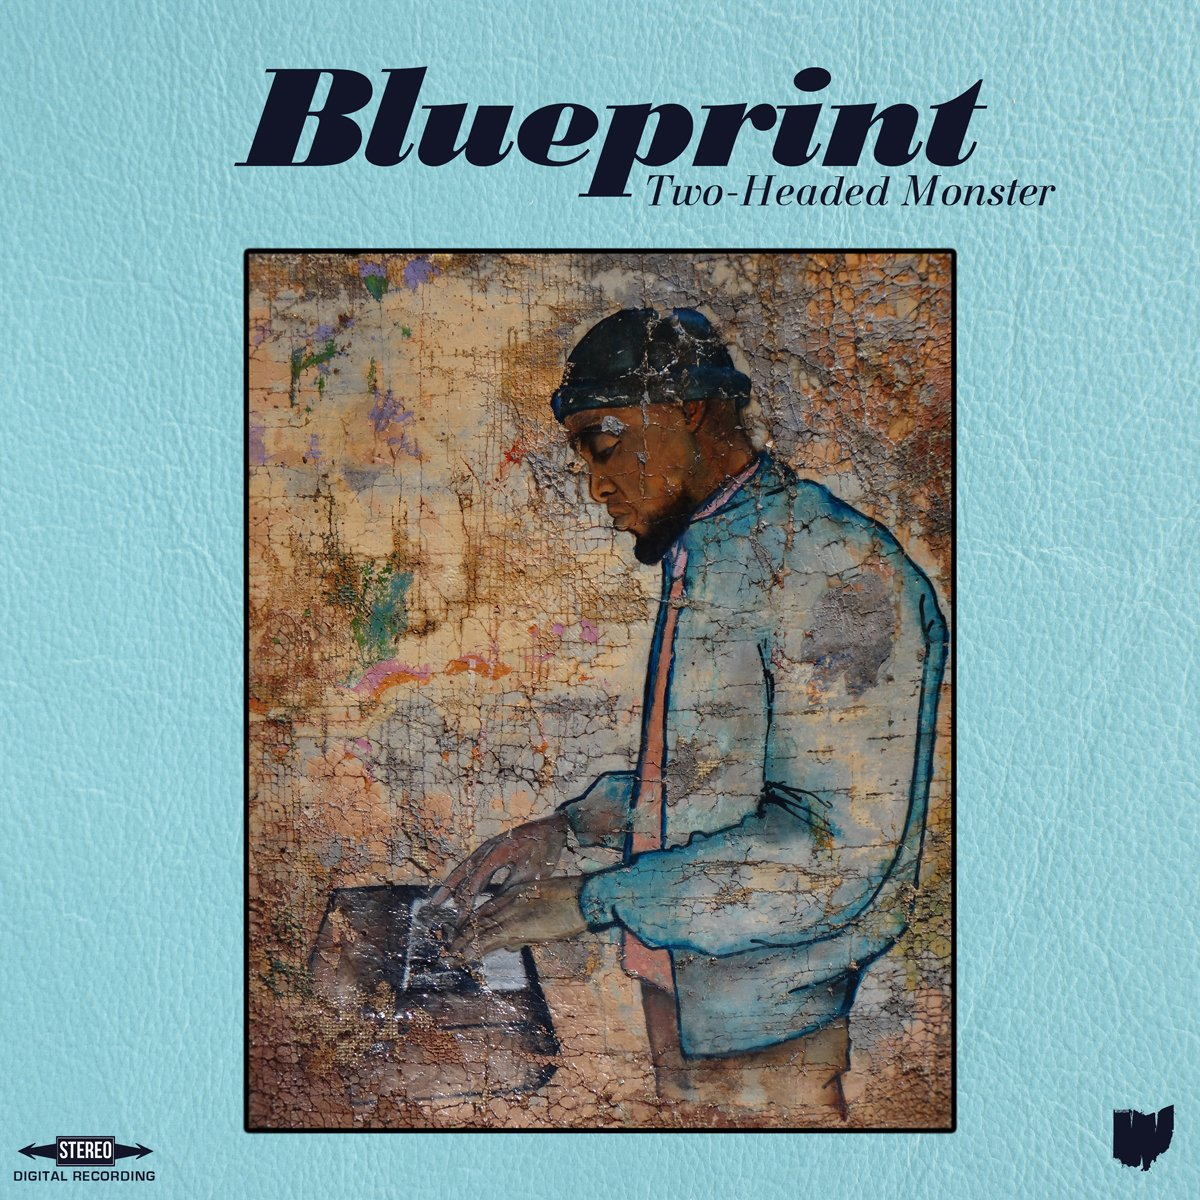 Blueprint on twitter blueprint hoop dreamin feat has lo get you can still preorder the album and get one of our dope preorder packages at httpbitthmalbum they will ship may 18th and arrive on or before may malvernweather Image collections